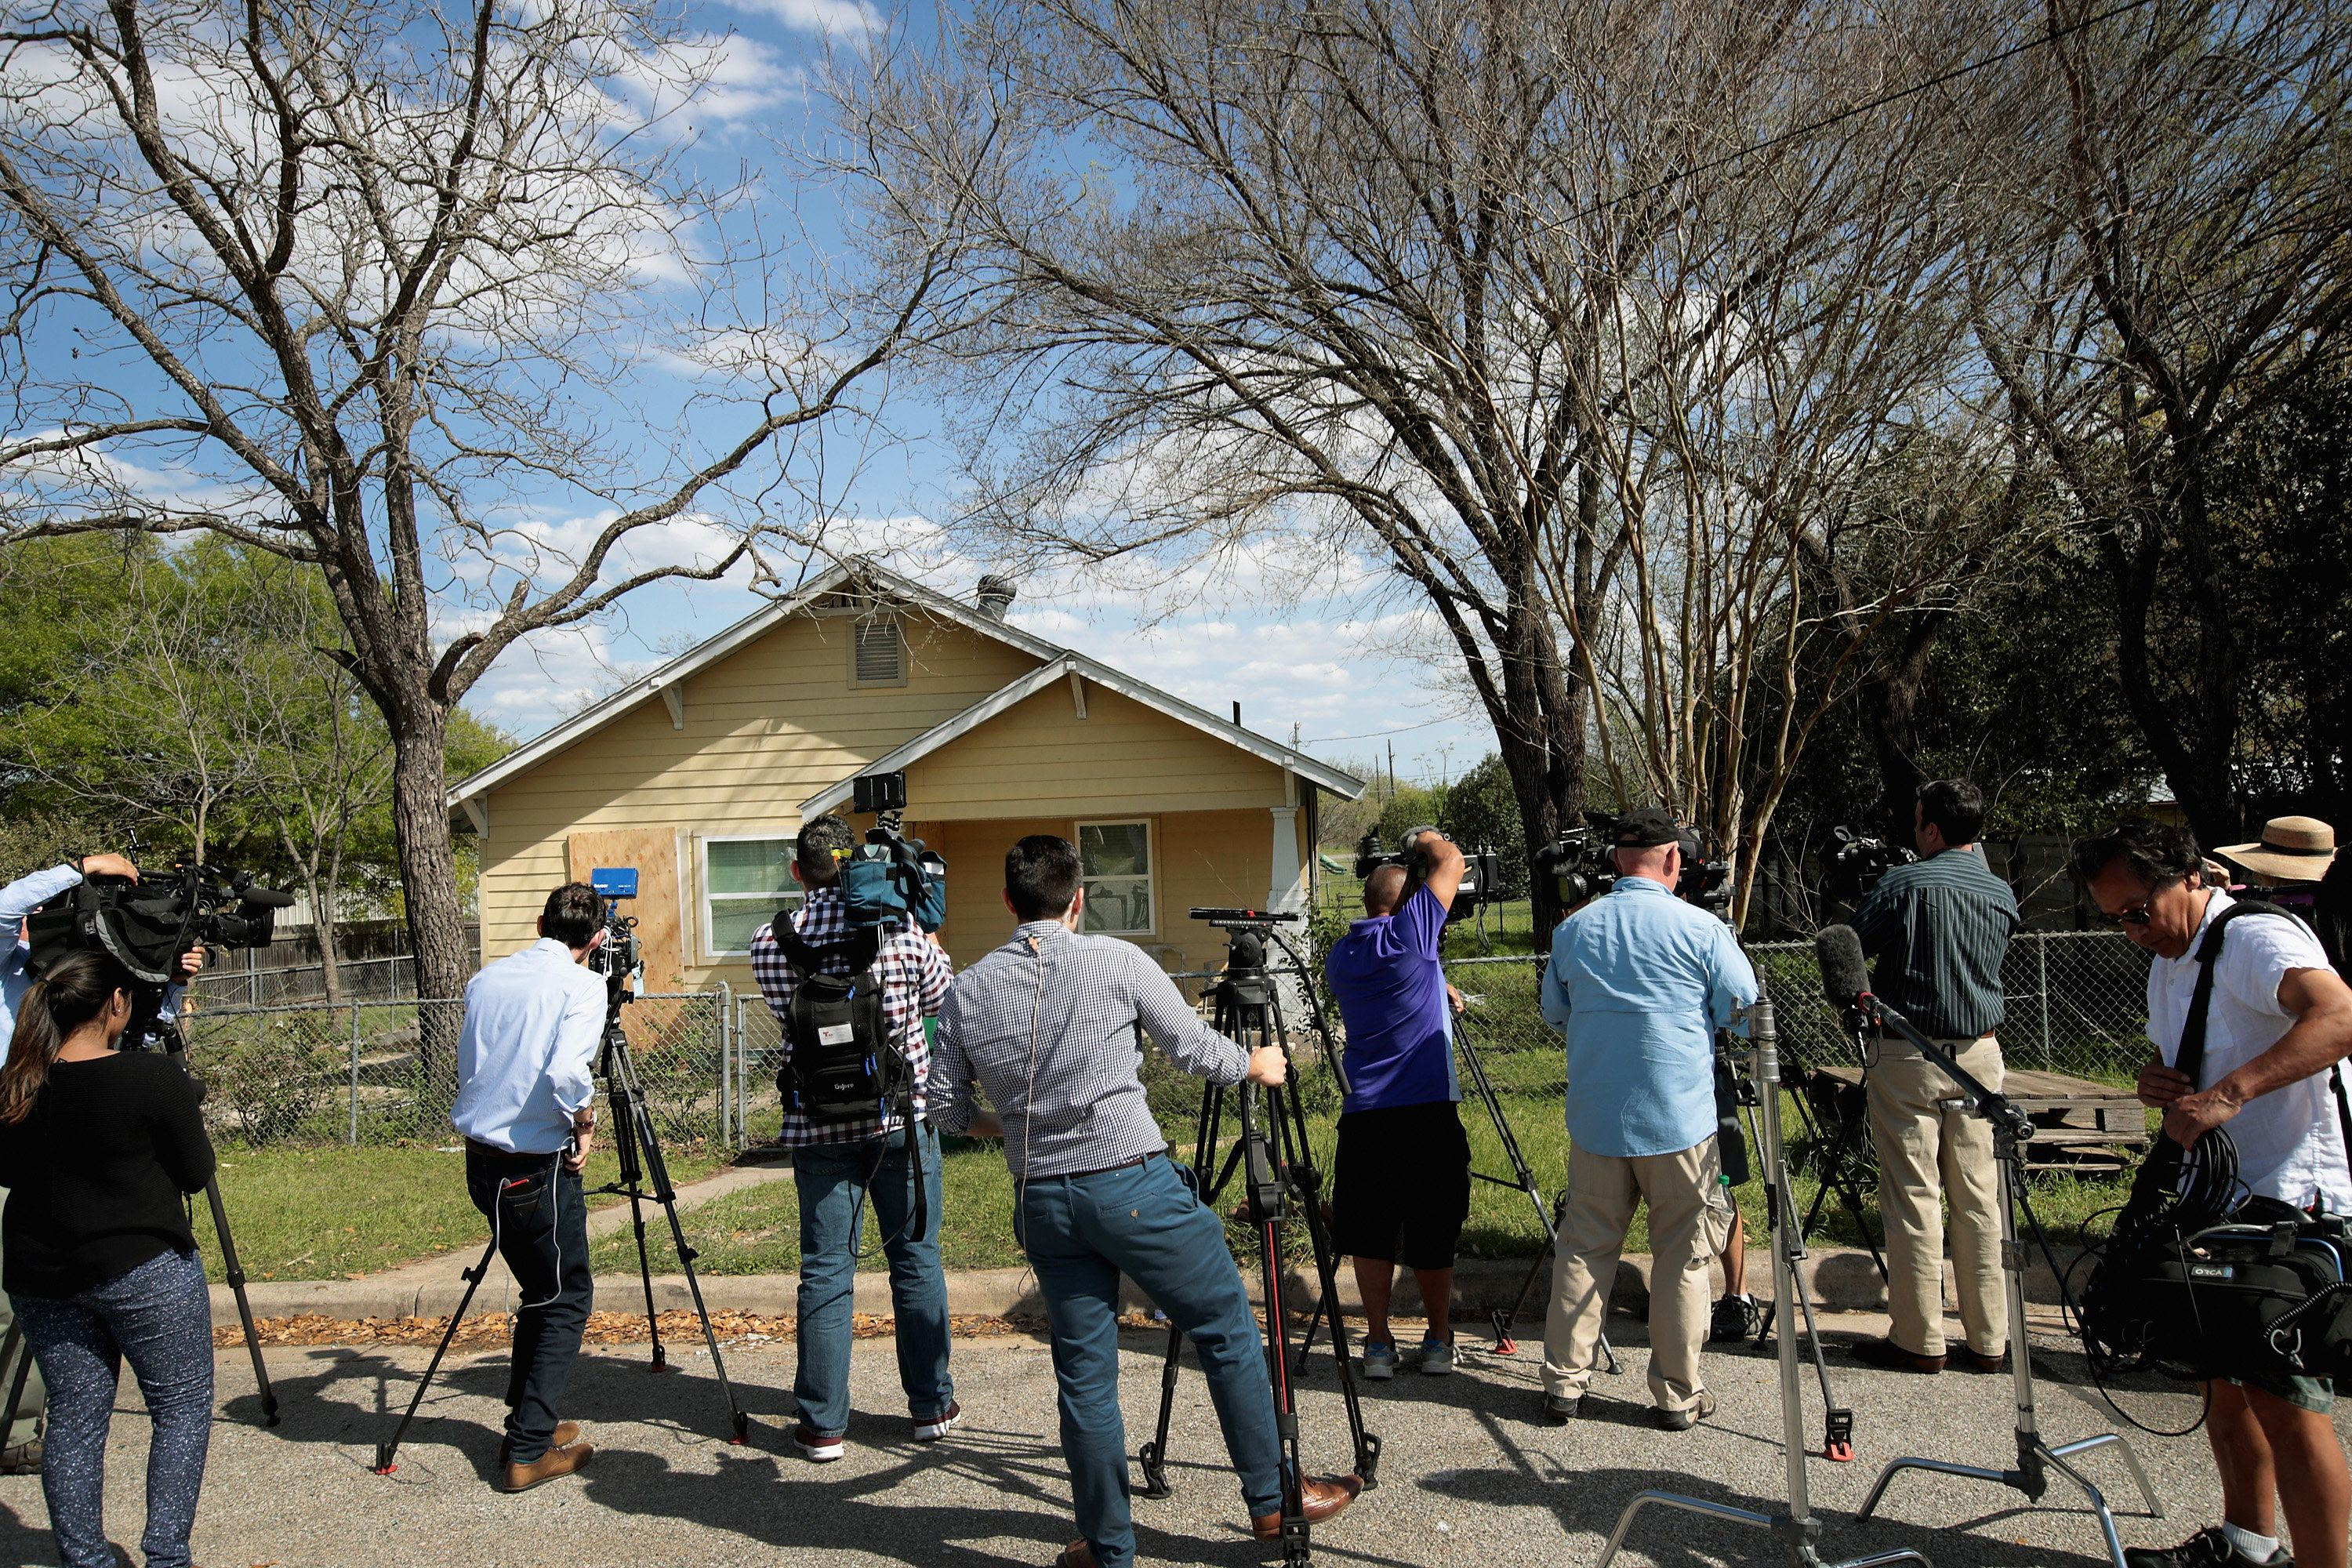 PFLUGERVILLE, TX - MARCH 22: Television news crews report from the front of the home of Mark Anthony Conditt following the police investigation at the property on March 22, 2018 in Pflugerville, Texas. Conditt, the 23-year-old suspect in the Austin package bombings, blew himself up inside his SUV as police tried to take him into custody yesterday in the nearby city of Round Rock. A massive search for the bomber had been underway by local and federal law enforcement officials in Austin and the surrounding area after several package bombs had detonated in recent weeks, killing two people and injuring several others. (Photo by Scott Olson/Getty Images)